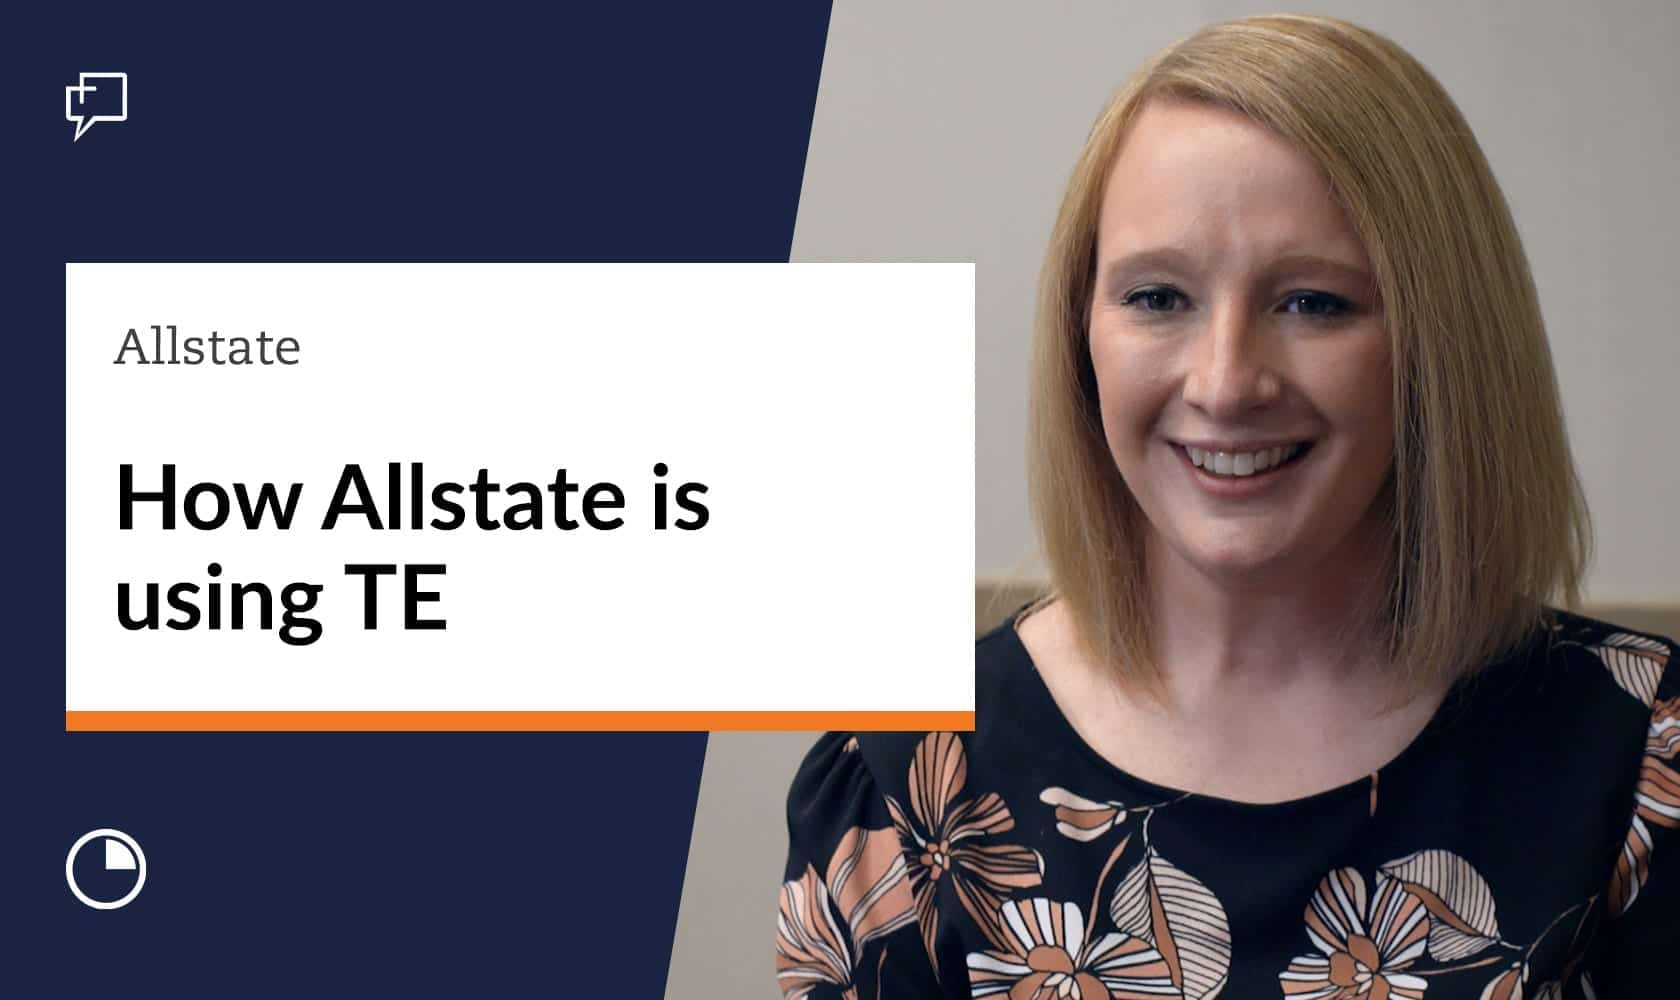 How Allstate is Using Thoughtexchange